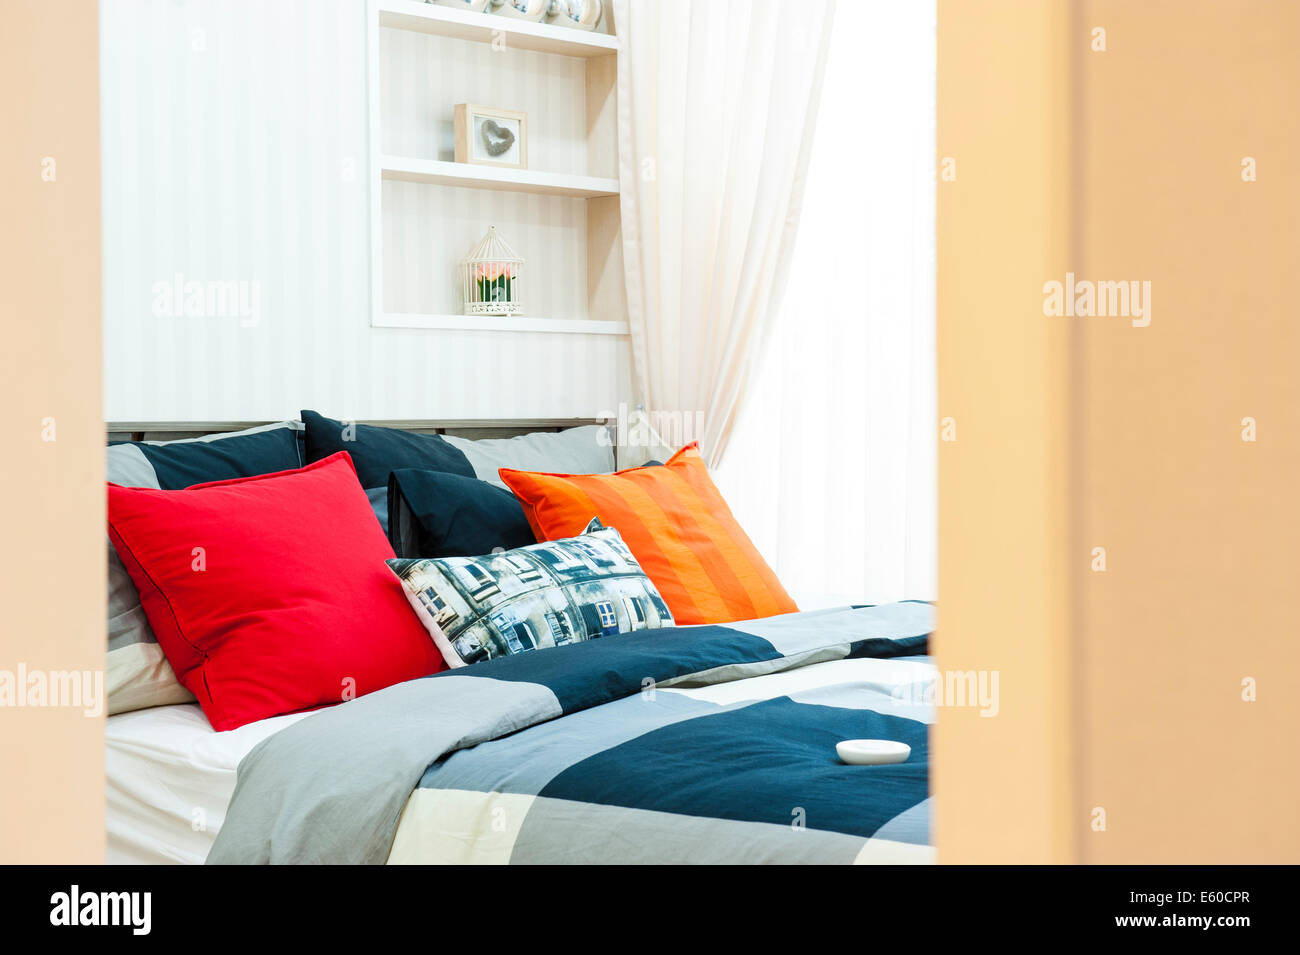 Open the bedroom with pillows - Stock Image